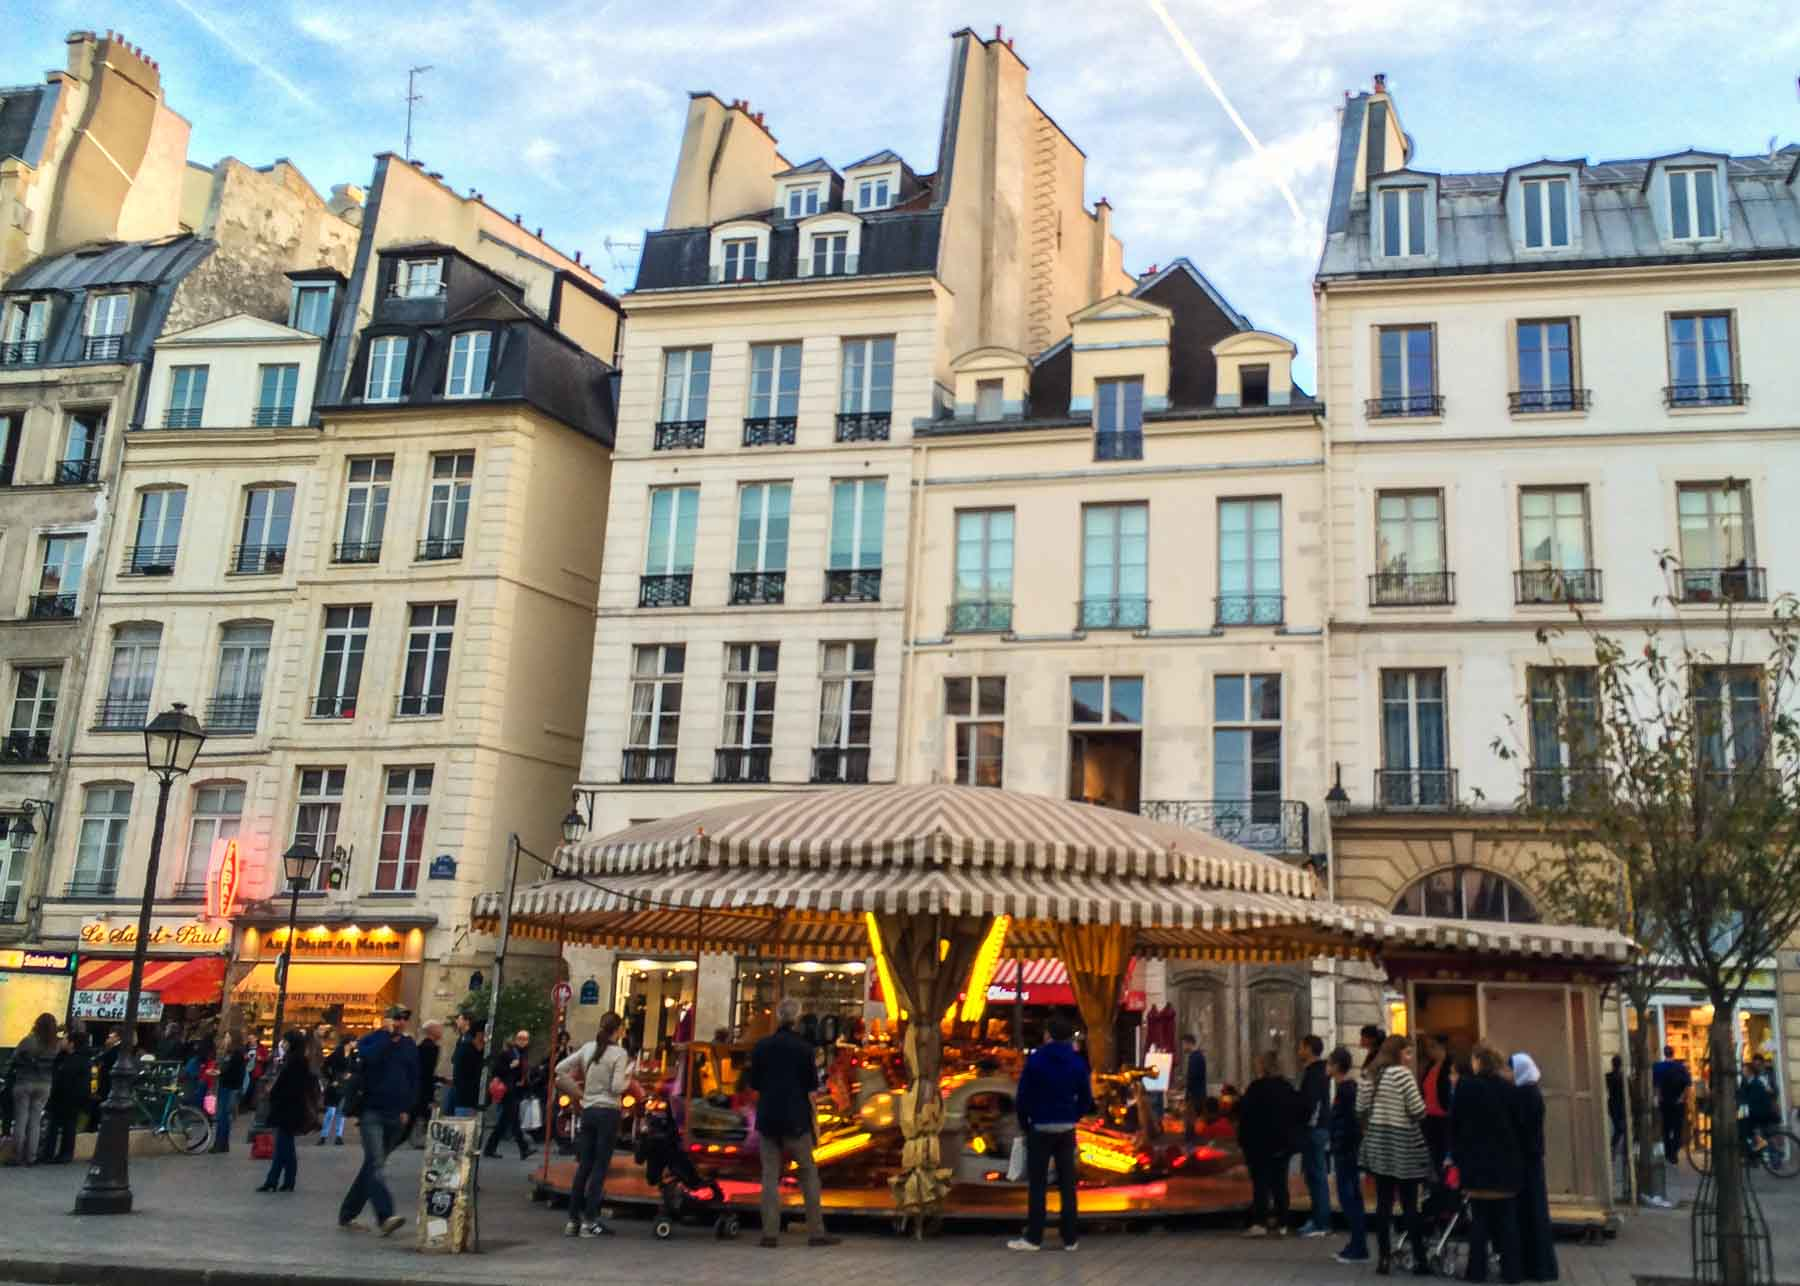 Paris apartment buildings behind a carousel.